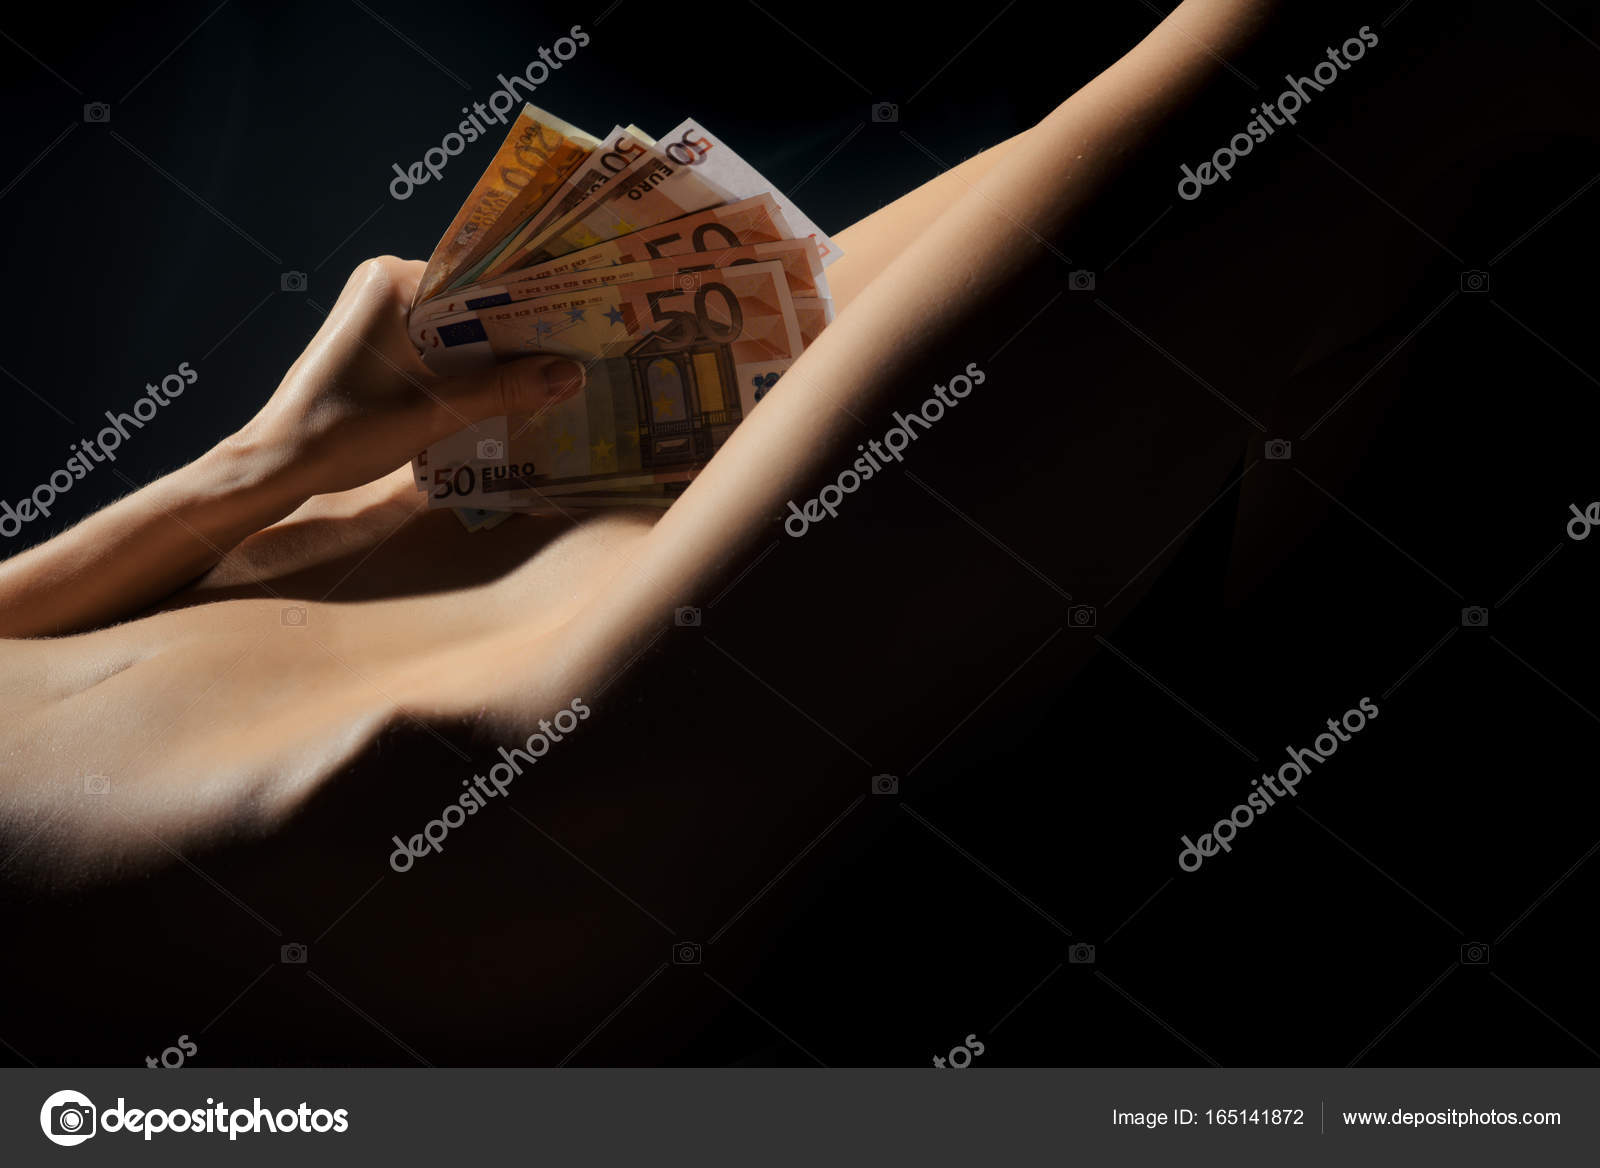 Naked girl with money